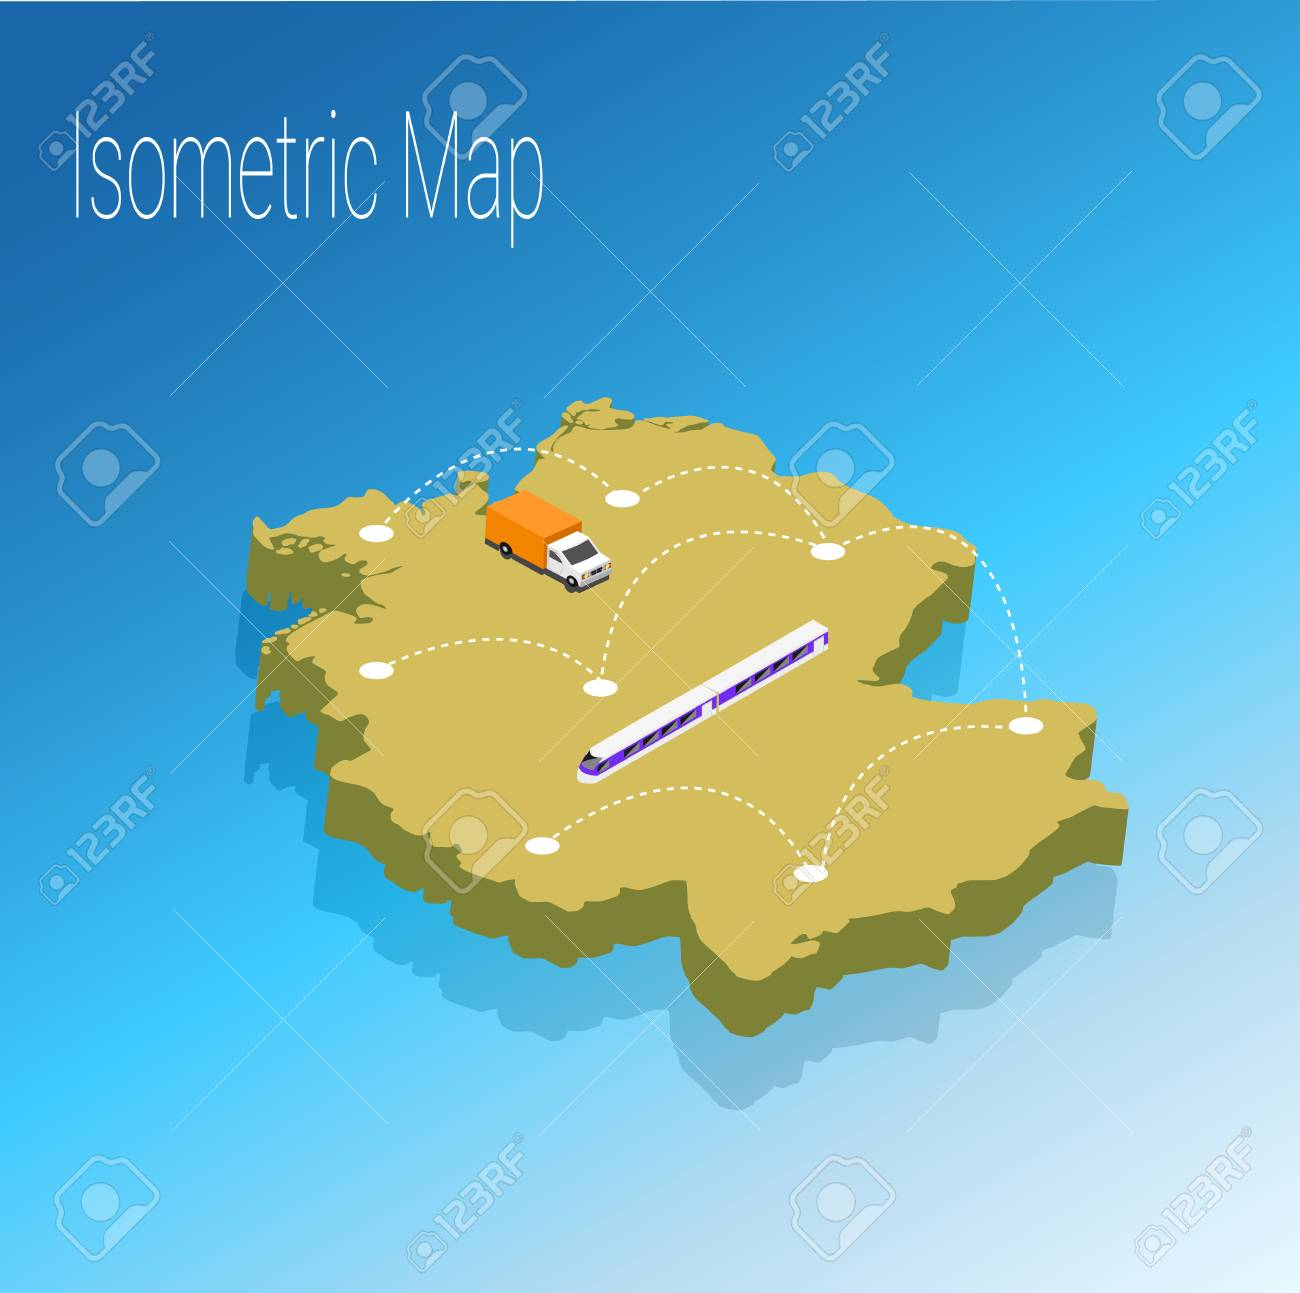 Map Of Germany 3d.Map Germany Isometric Concept 3d Flat Illustration Of Map Germany